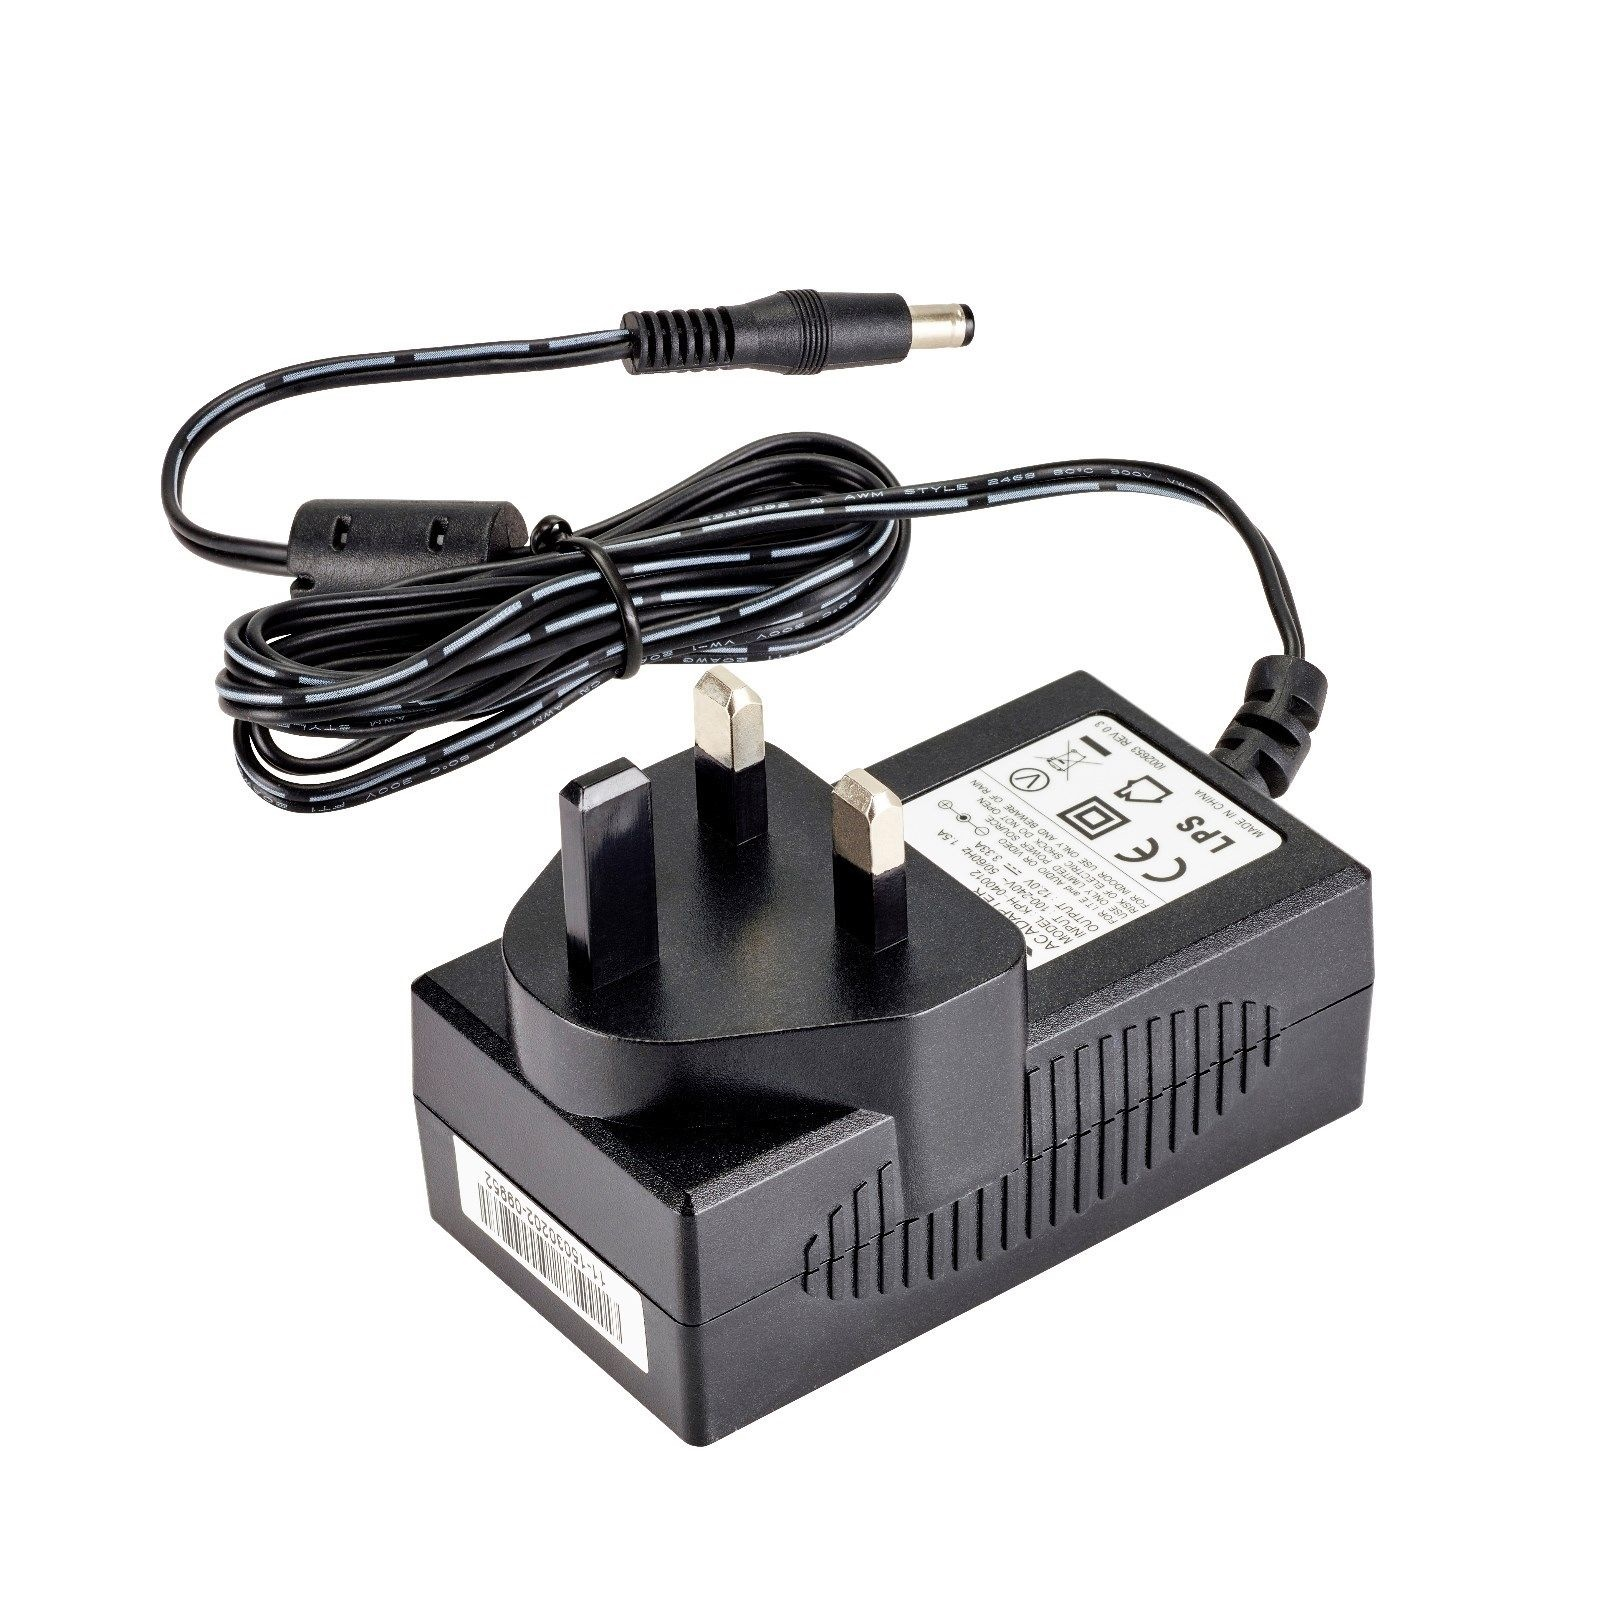 Details about 12V 3A Mains AC-DC Adaptor Power Supply for Bush Models C19ZF  C22ZF TV